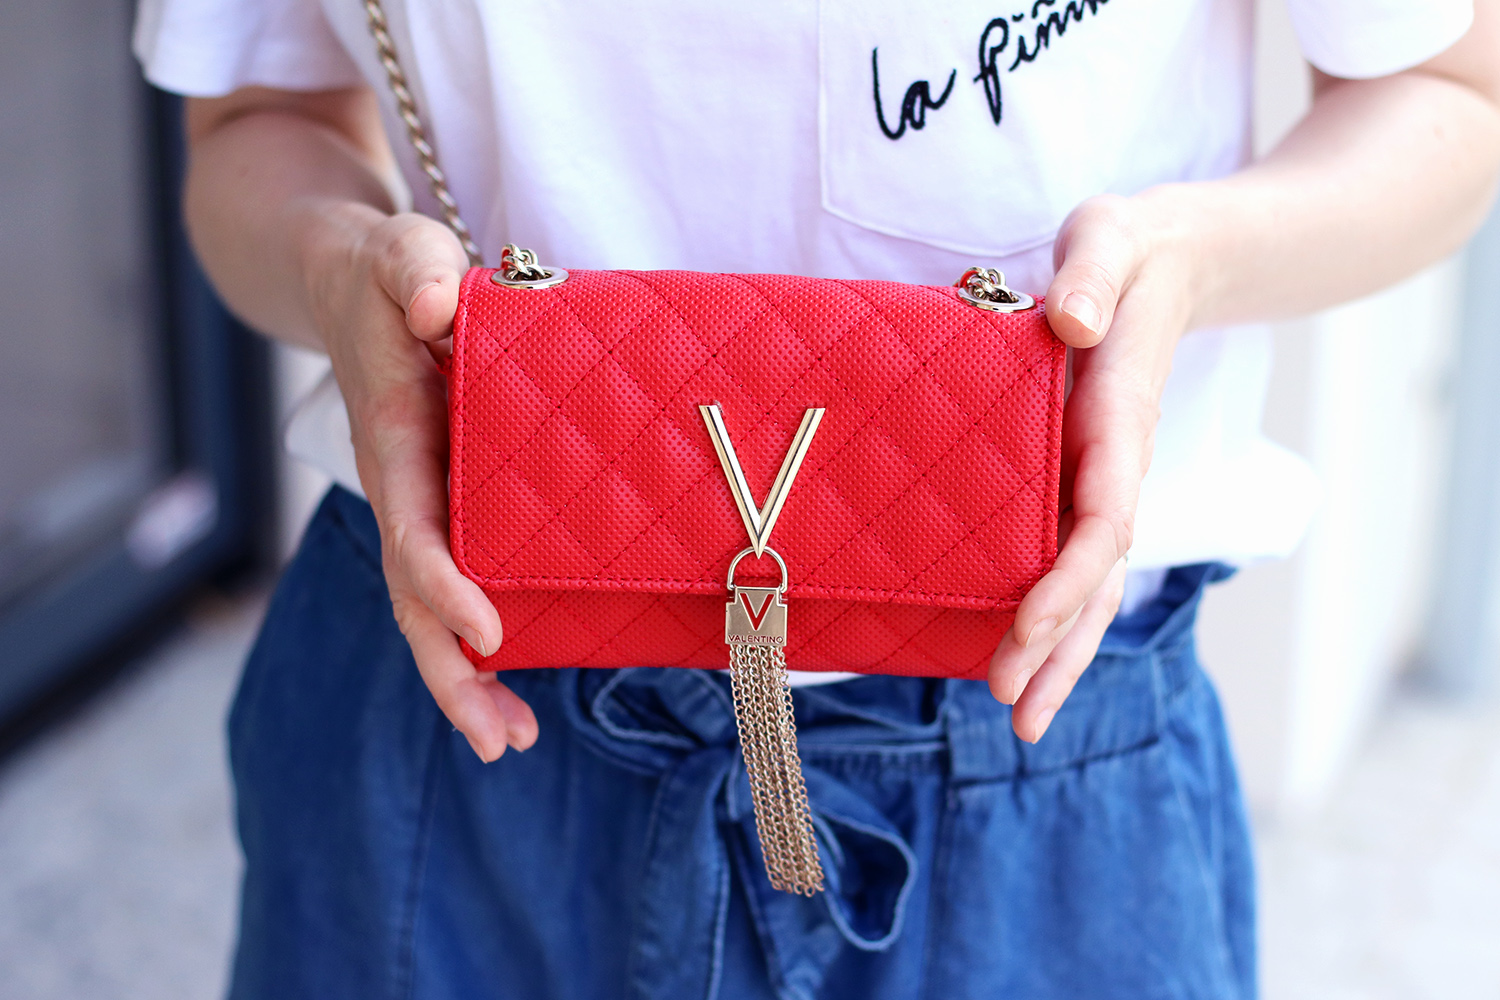 Valentiono Bag Red, Jeans Shorts, Pants, Summer Look, Outfit, Tips, Streetstyle, Fashion Tips, Find Your Style, Influencer, Germany, Berlin, Fashion Blog, Fashion Blog, Advance Your Style, advanceyourstyle